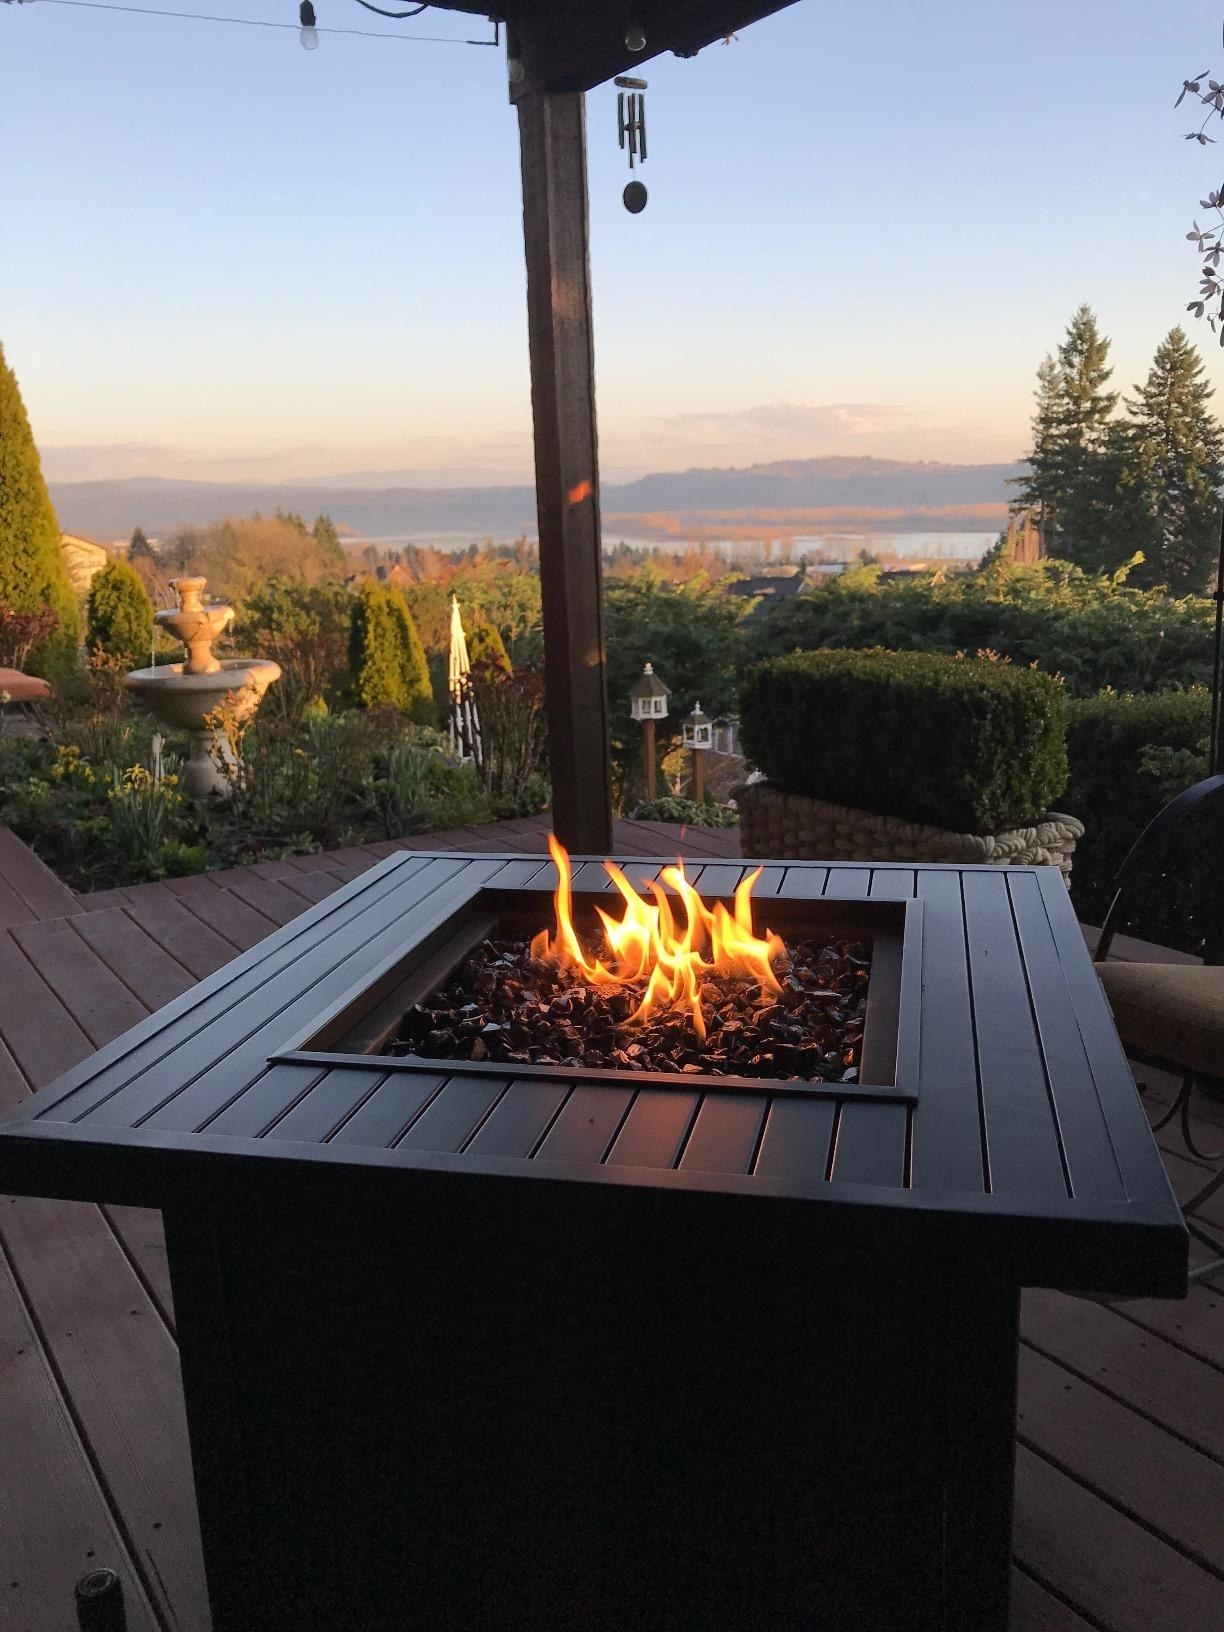 reviewer's fire pit on a porch